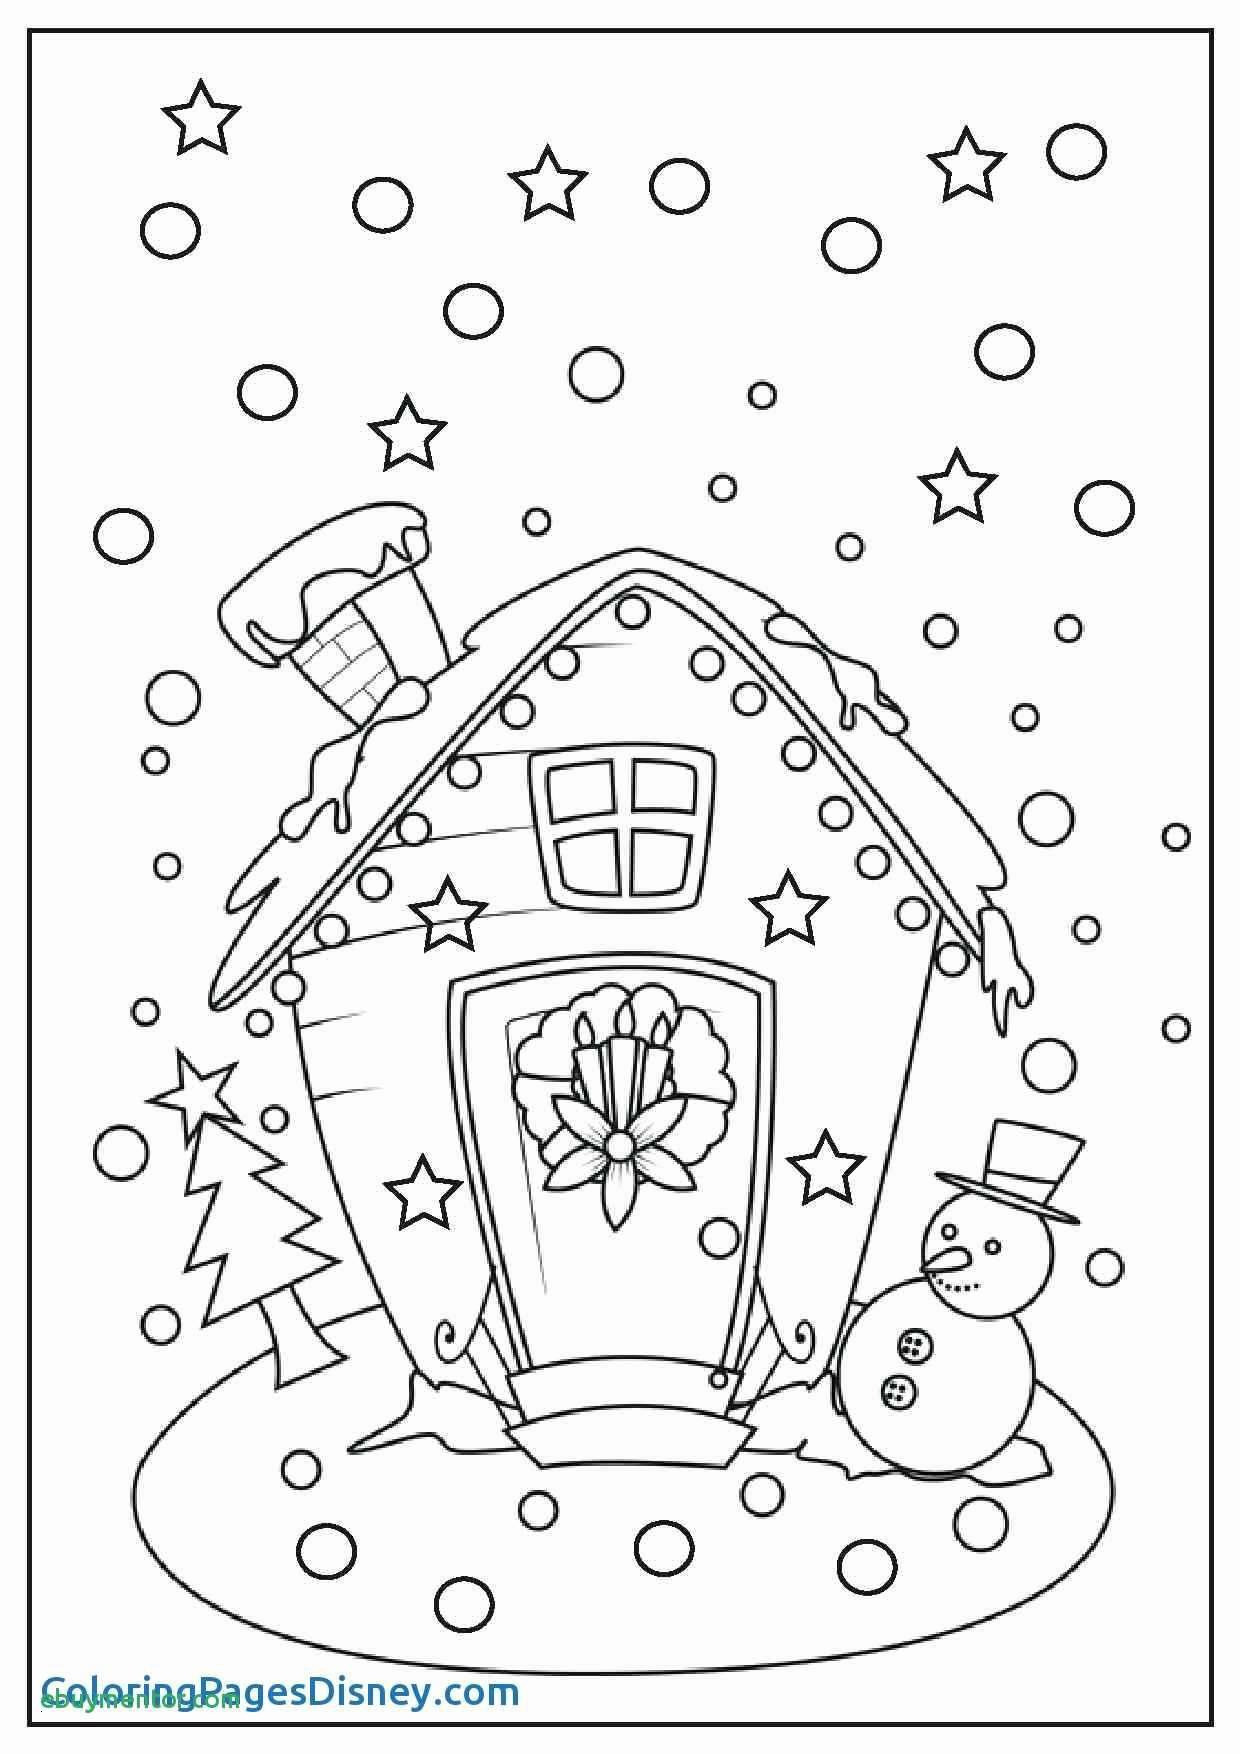 Malvorlagen Winnie Pooh Inspirierend Winnie the Pooh Winter Coloring Pages Coloring Pages Coloring Pages Fotografieren